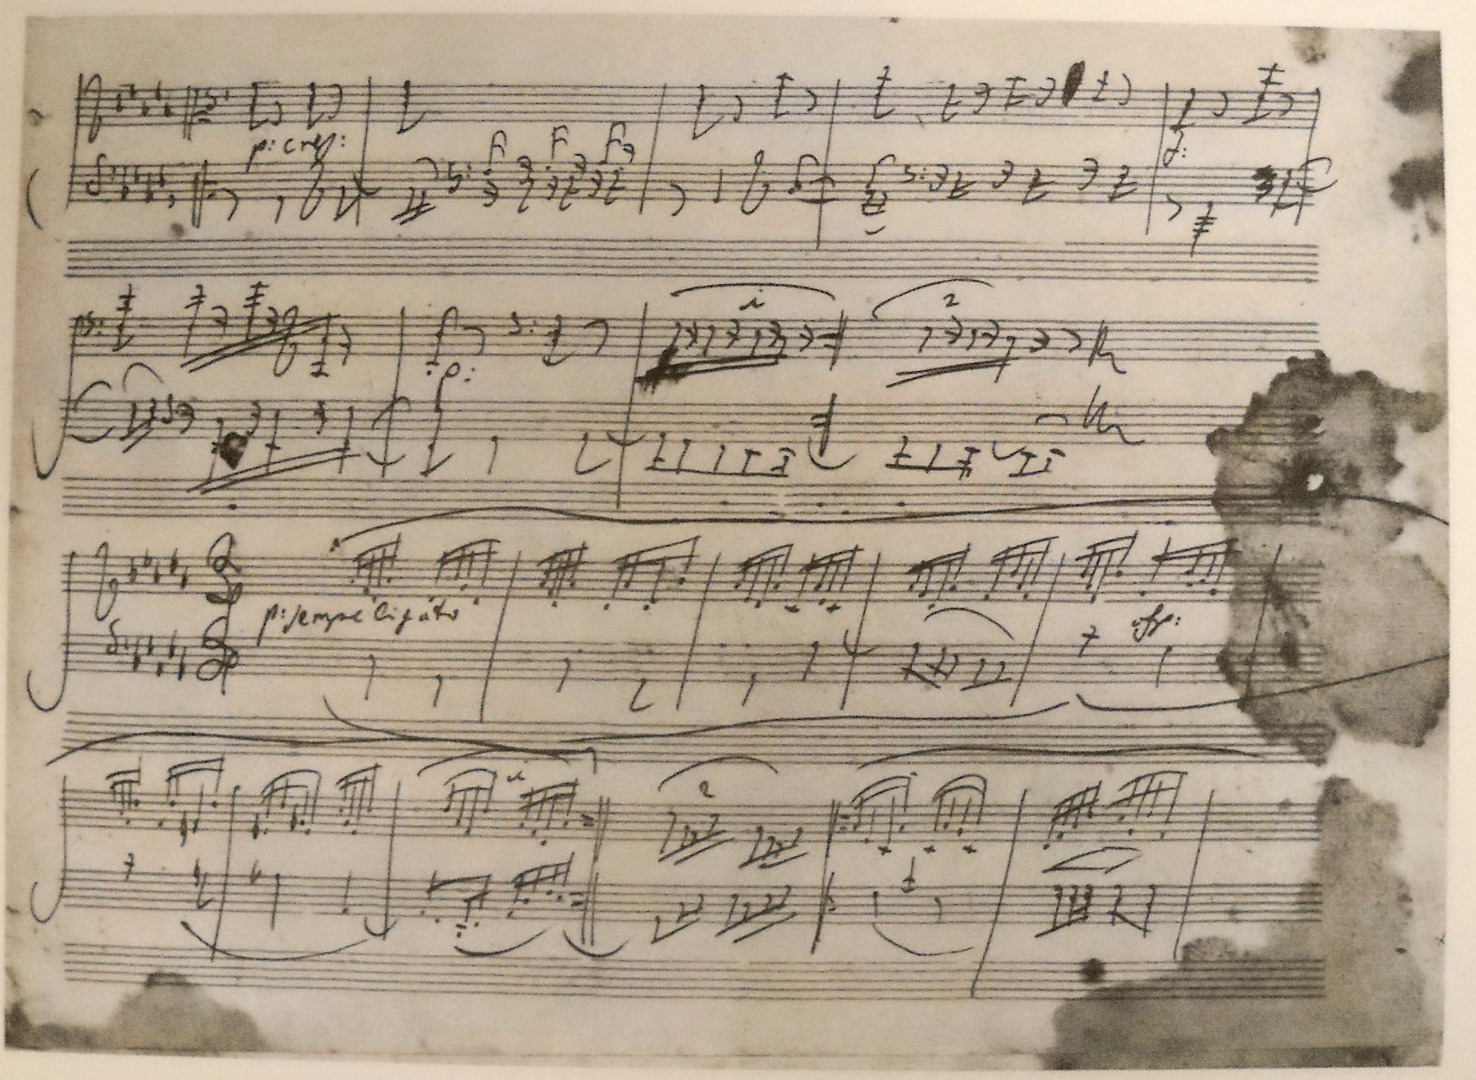 Water stained page from the manuscript of the Appassionata: movement 2, page 2